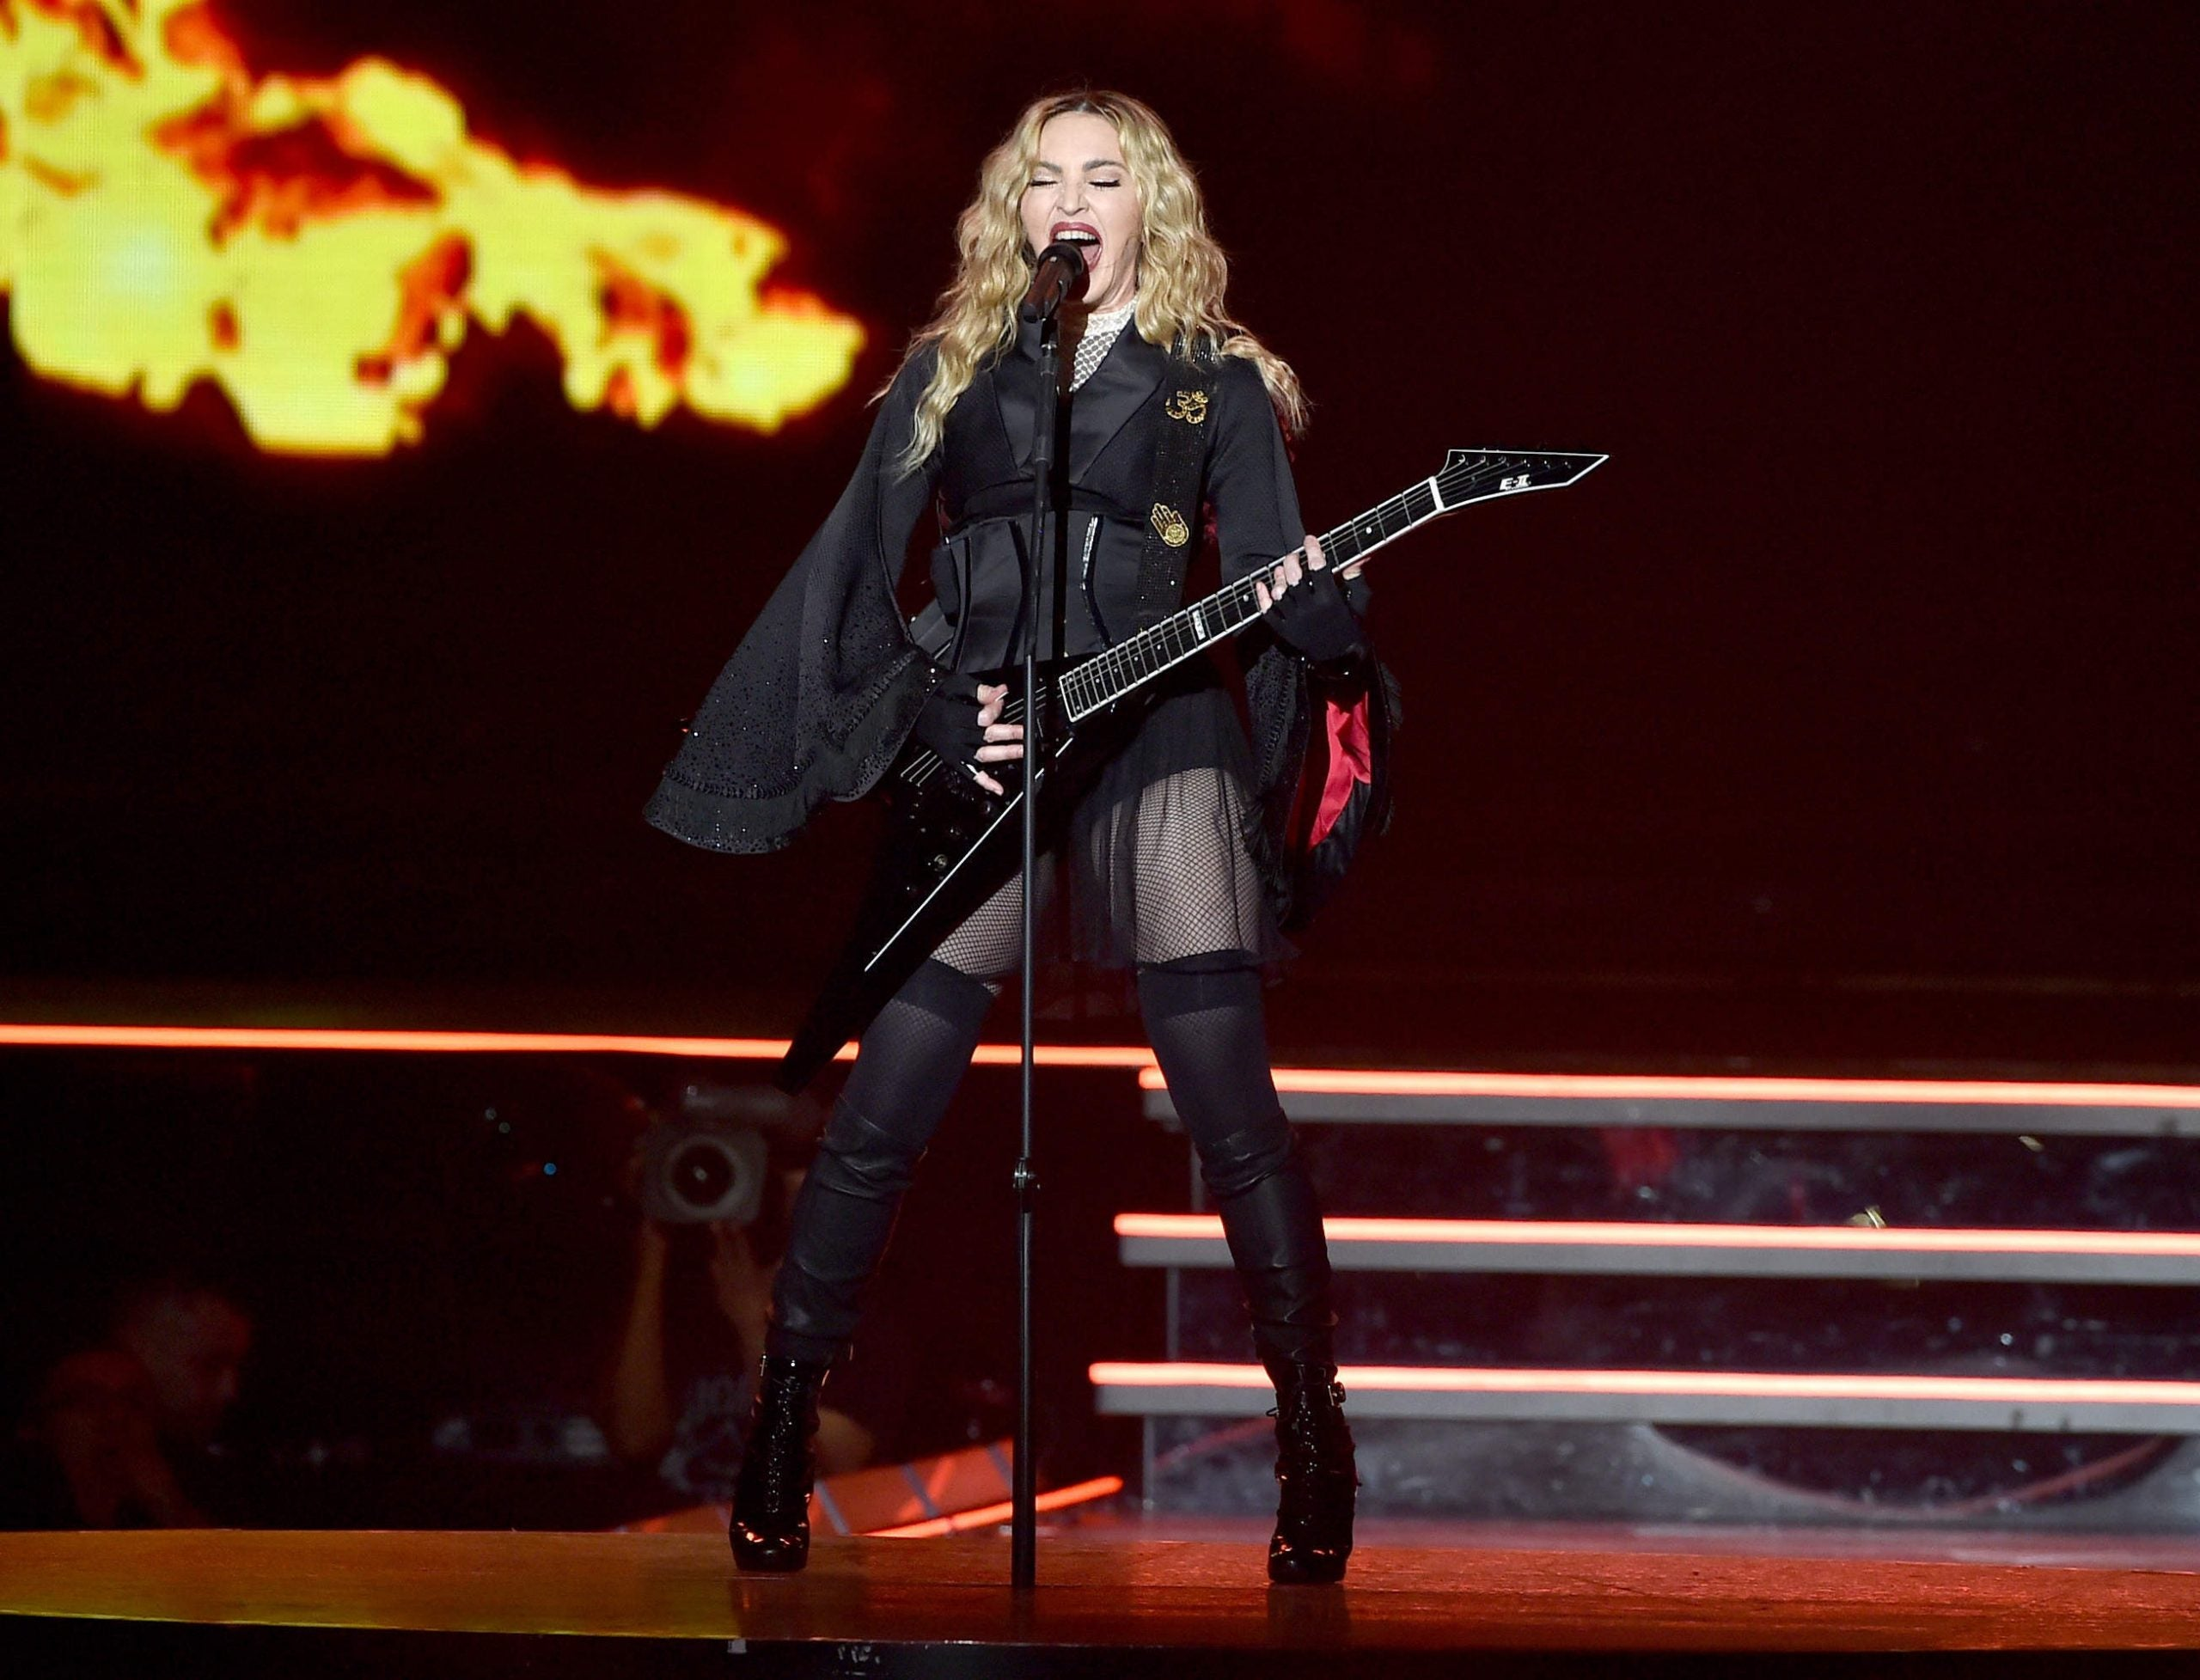 My attempt at running disintegrates into a war of words with Madonna